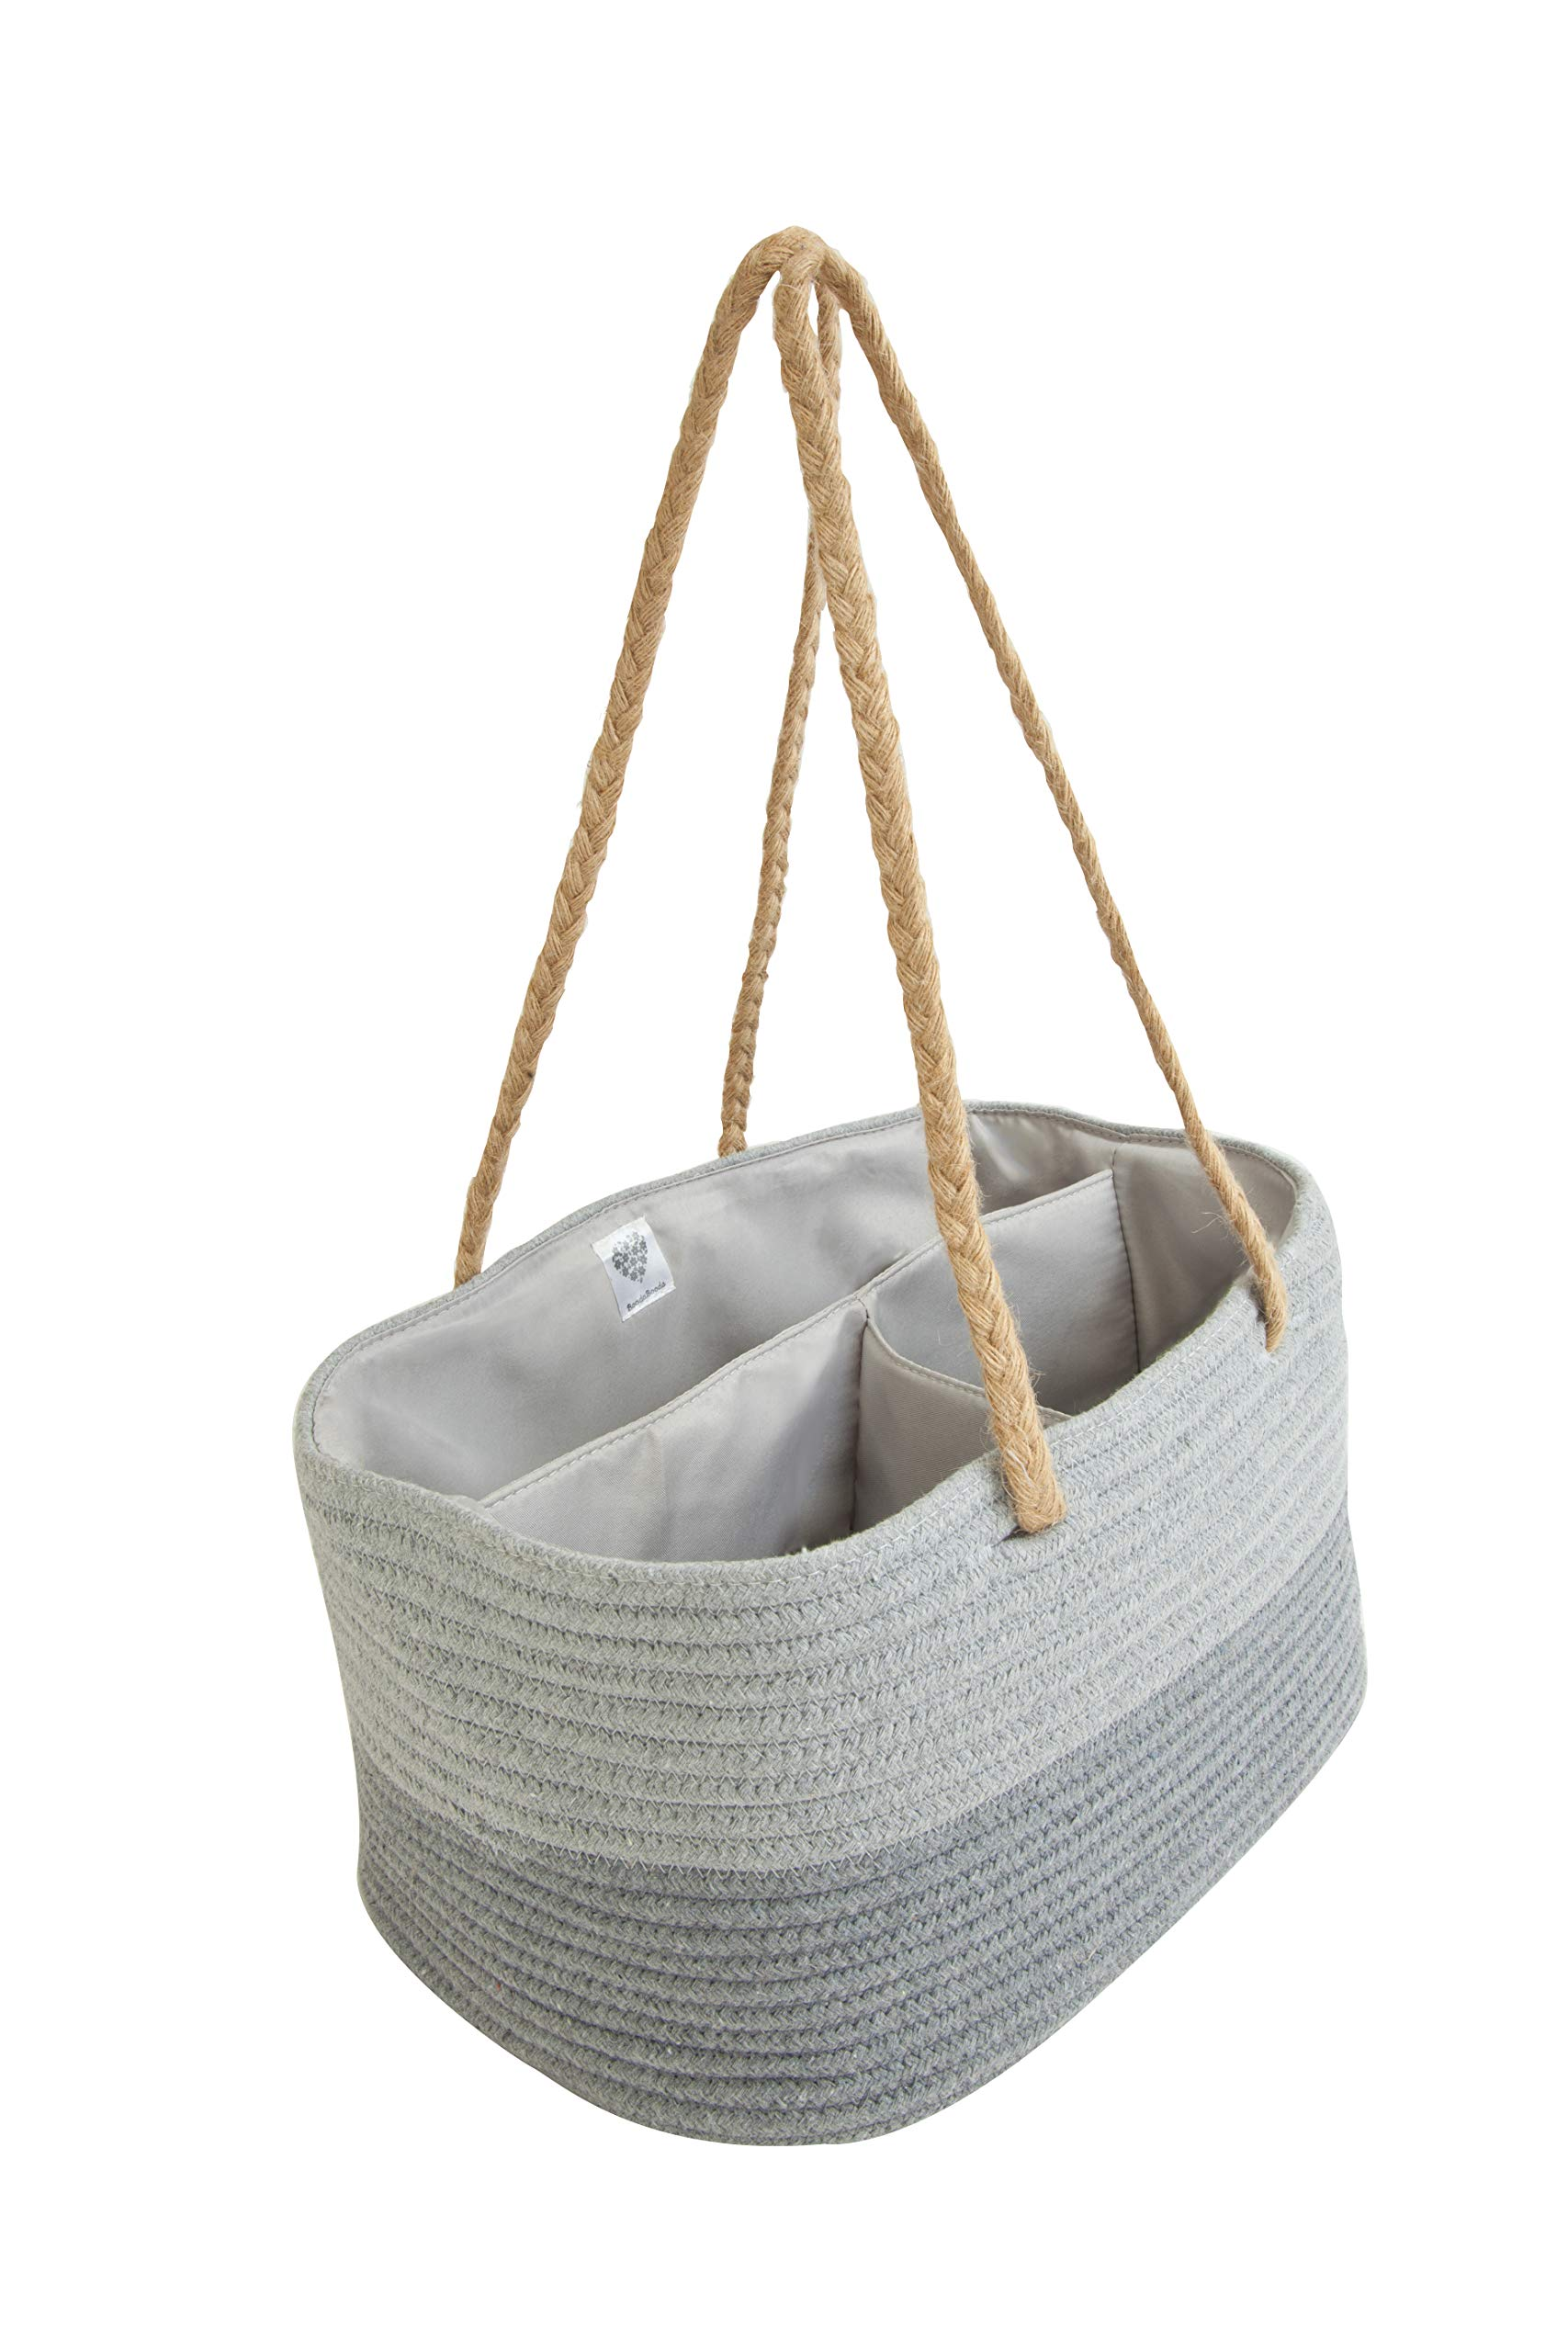 BoodaBooda Diaper Caddy Organizer | Cotton Rope Grey Storage Basket | Portable Diaper Organizer | Nursery Storage Basket | Baby Essentials Car Organizer by BoodaBooda